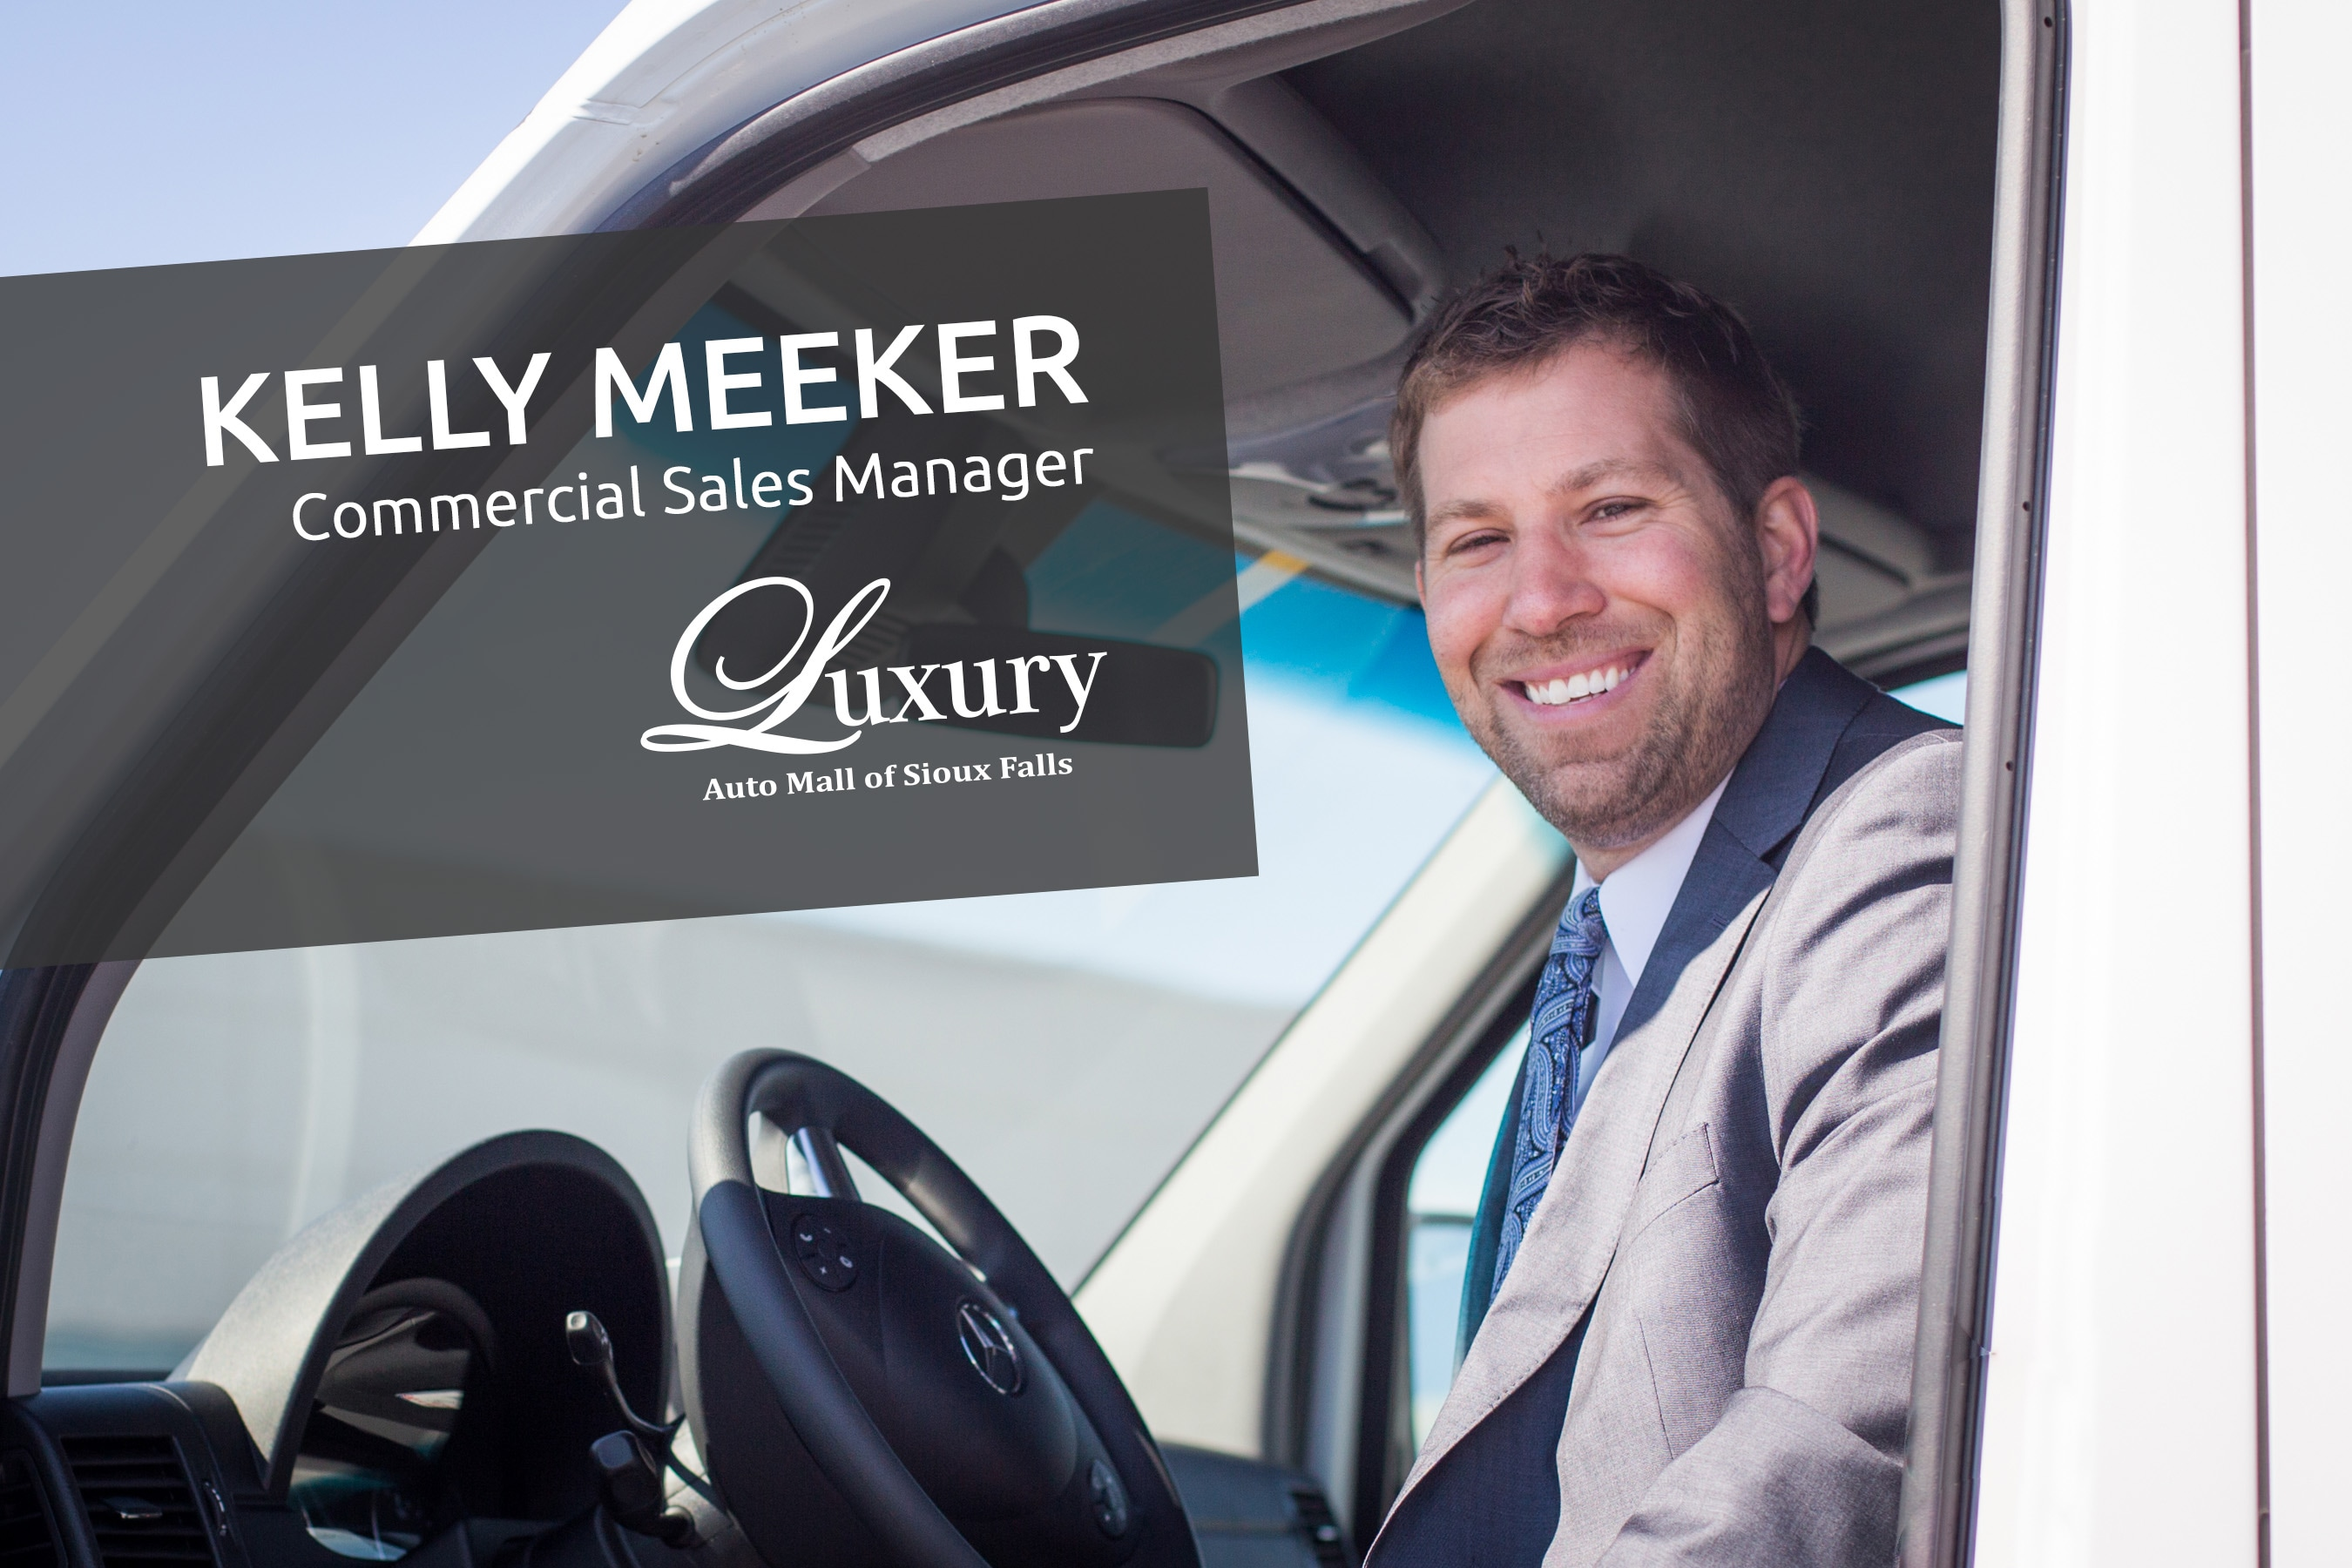 Meet Us Monday Kelly Meeker mercial Sales Manager at the Luxury